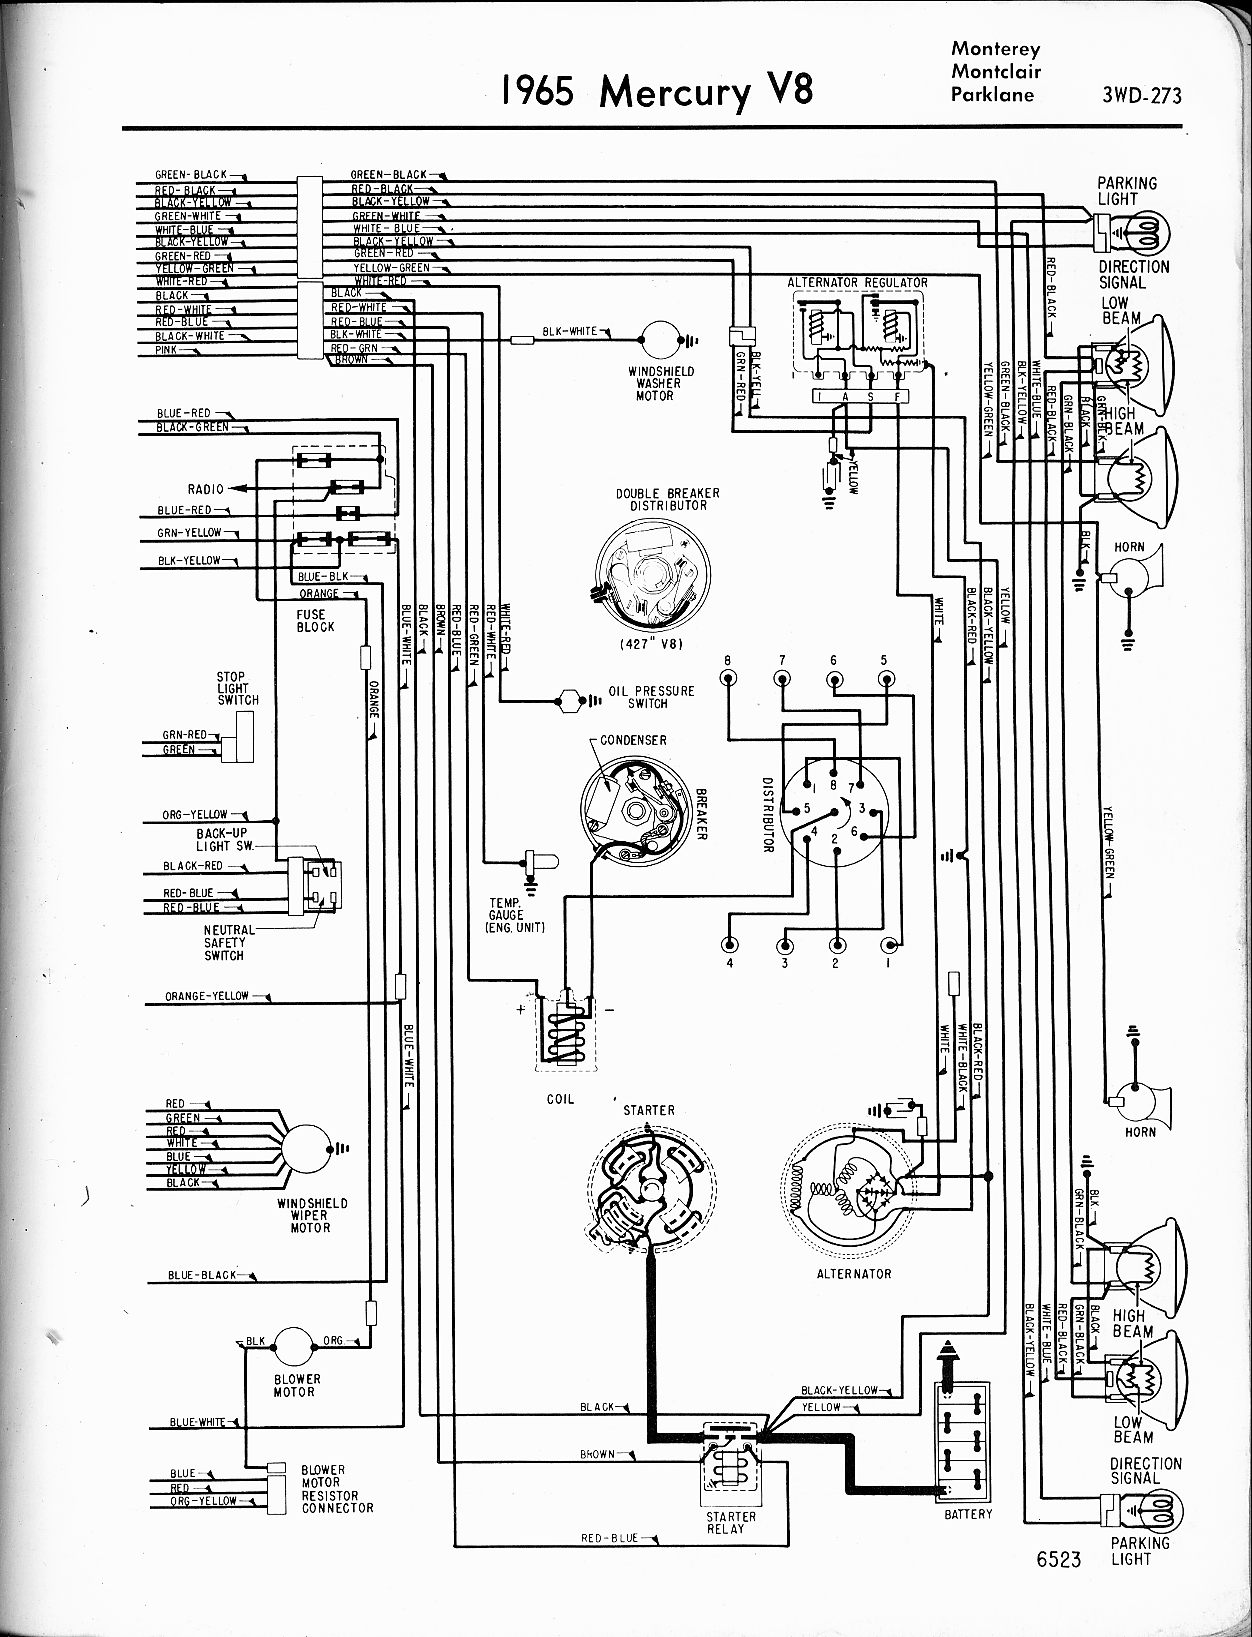 1956 Mercury Monterey Wiring Diagram moreover Diagram view also 1999 Ford Ranger Vacuum Schematic furthermore 350 Chevy Engine Wiring Diagram Related Keywords Suggestions as well 93 Chevy Truck Fuse Wiring Diagram. on 1955 buick signal system